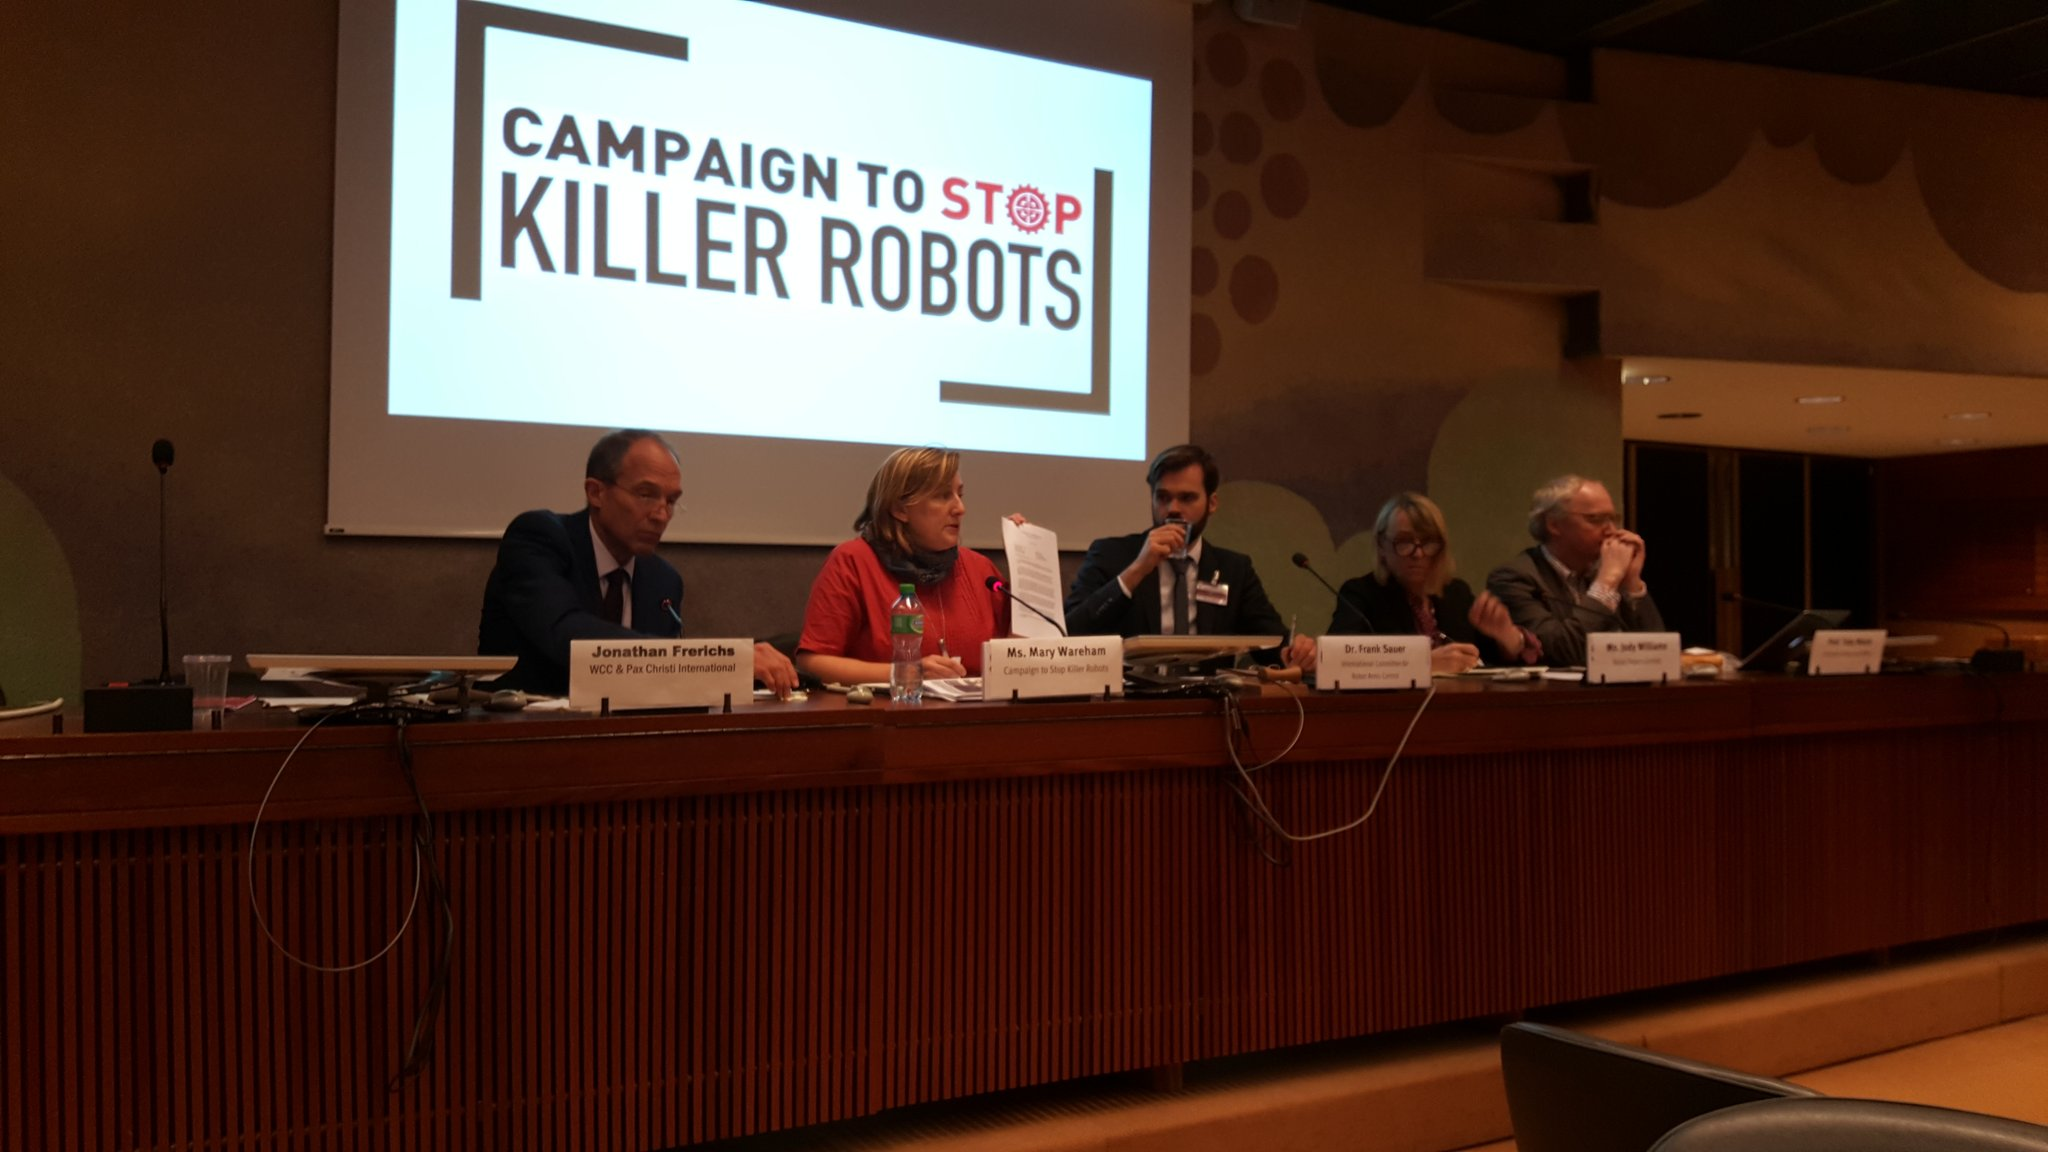 . @marywareham shares congressional letter recently released in support of prohibition of autonomous weapons #CCWUN https://t.co/h1NhYSqAuX